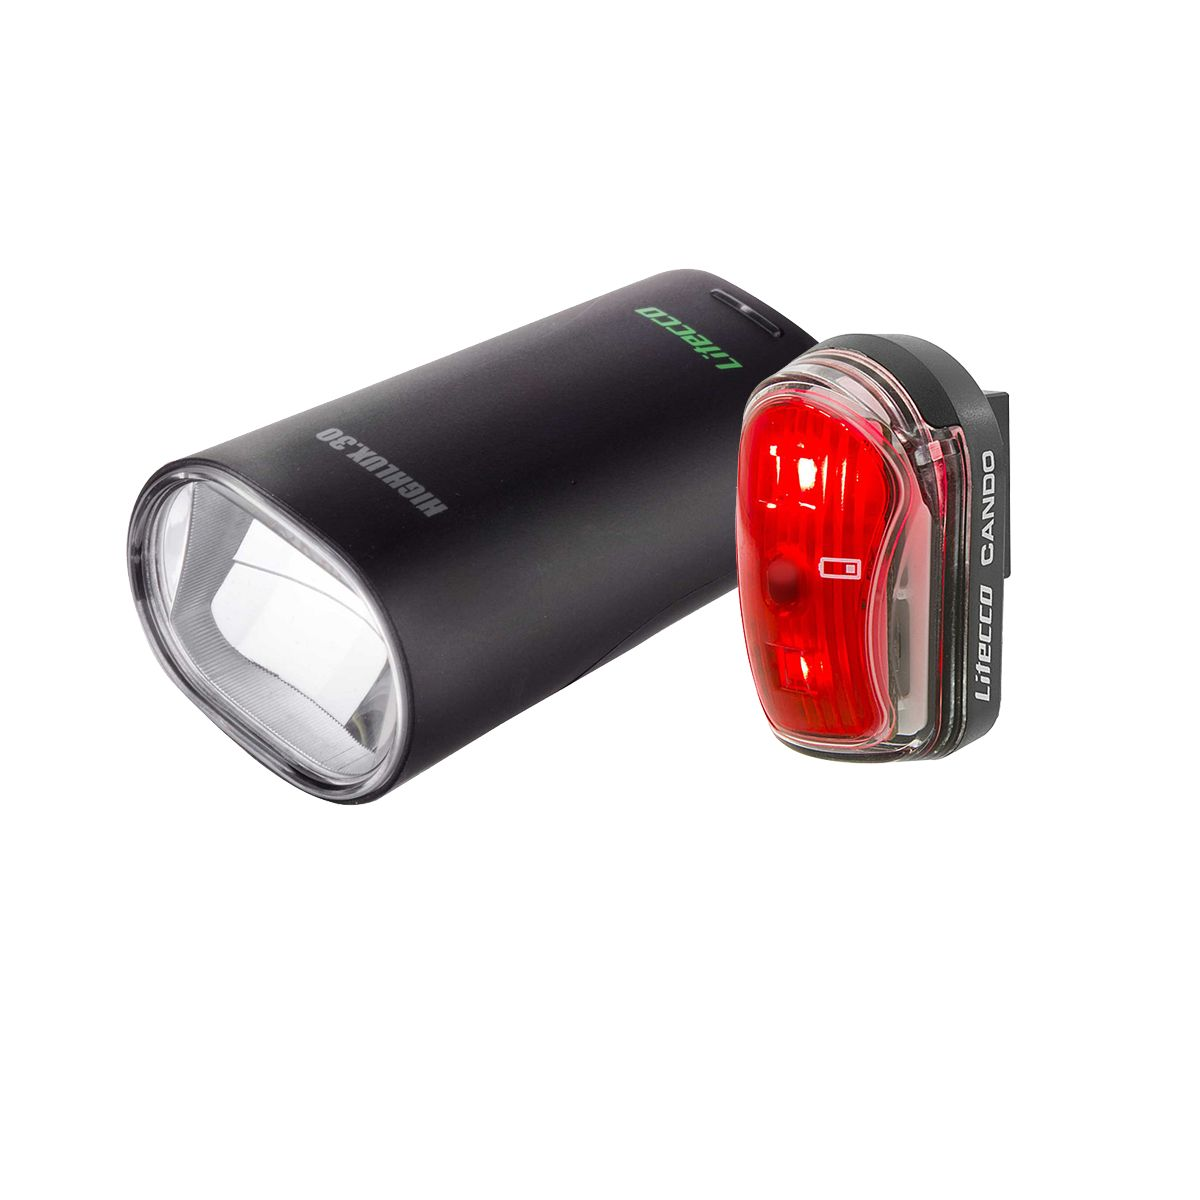 Litecco Lighting set Highlux.30 headlight and Cando tail light | Lygtesæt